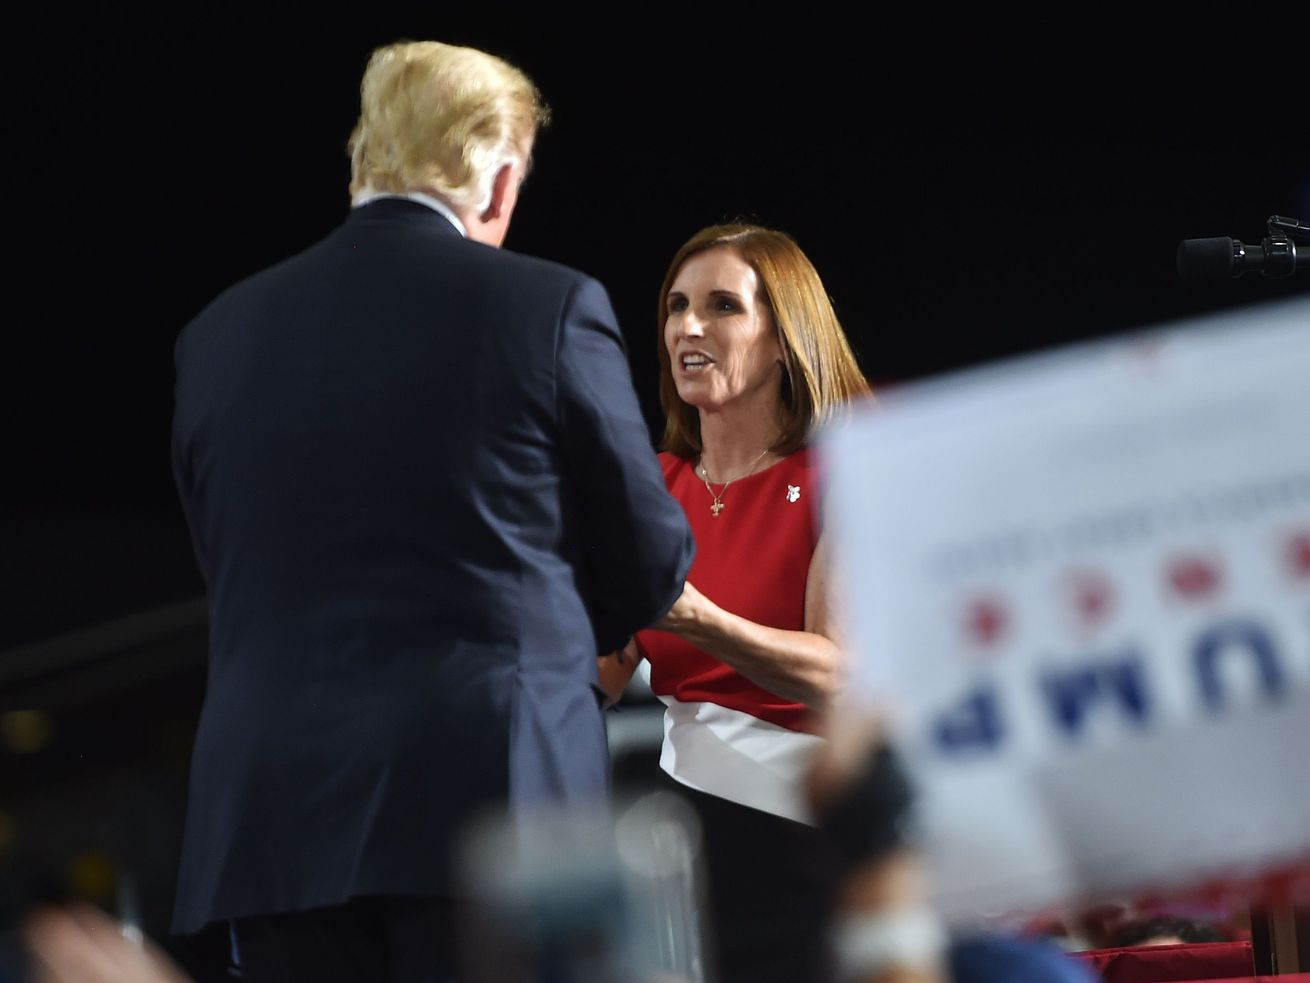 Martha McSally shaking hands with Trump at one of his rallies.